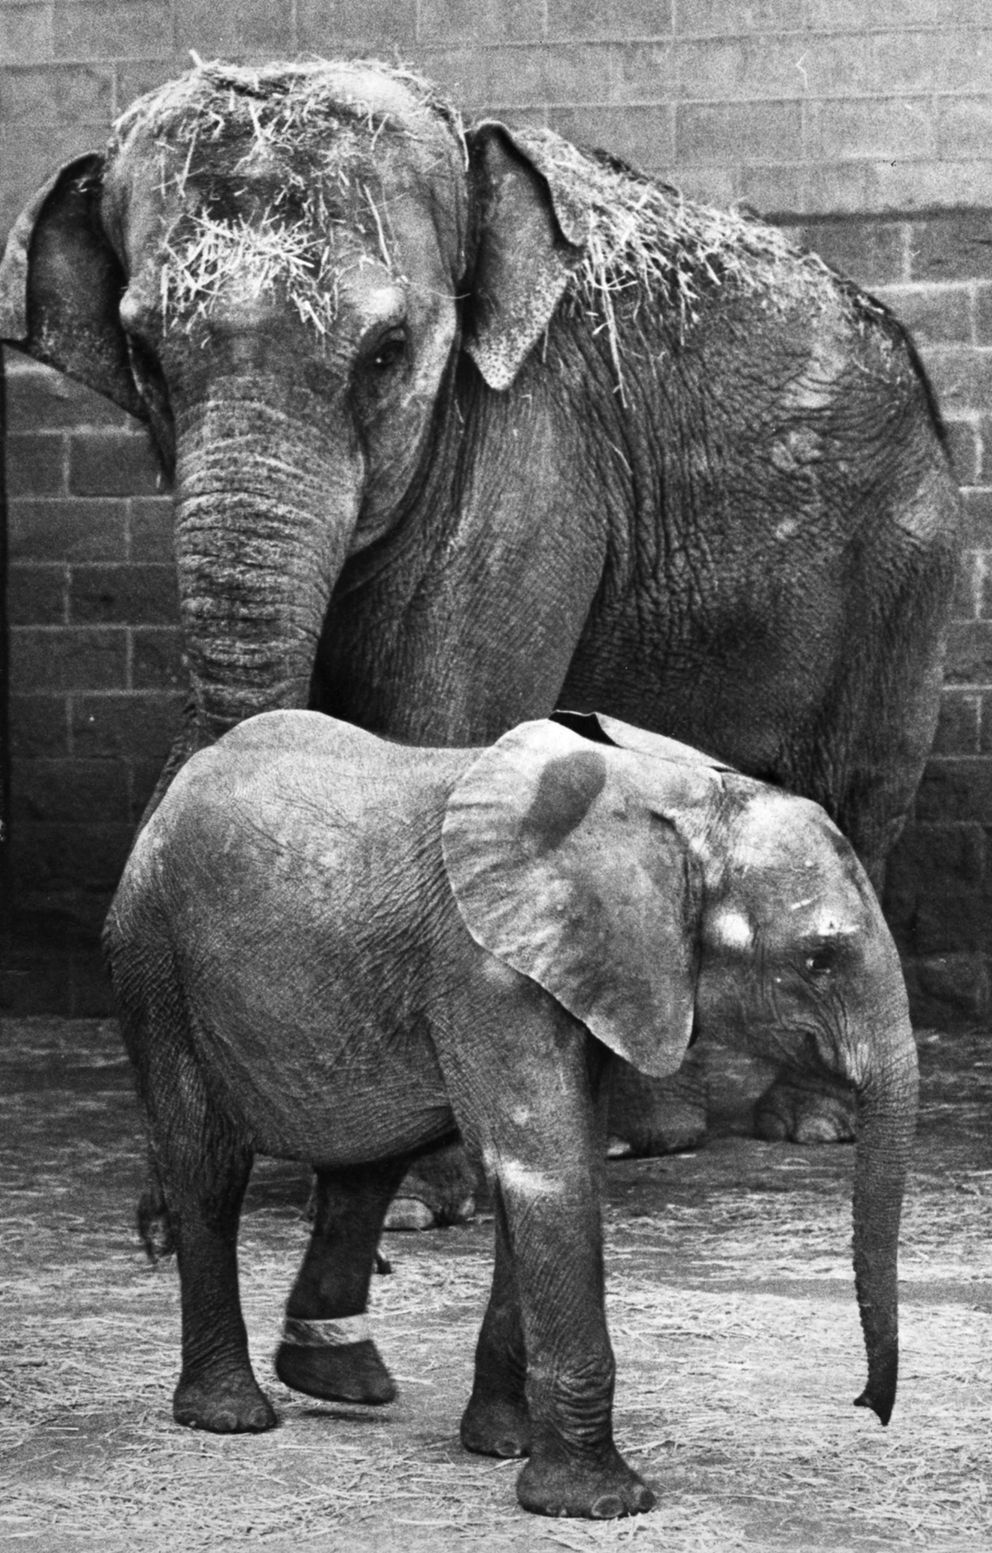 Maggie, then a one-year-old orphaned African elephant, arrived Friday, Sept 30, 1983, at the Alaska Zoo. She was dwarfed by the zoo's resident Asian elephant, Annabelle. (Fran Durner / ADN)